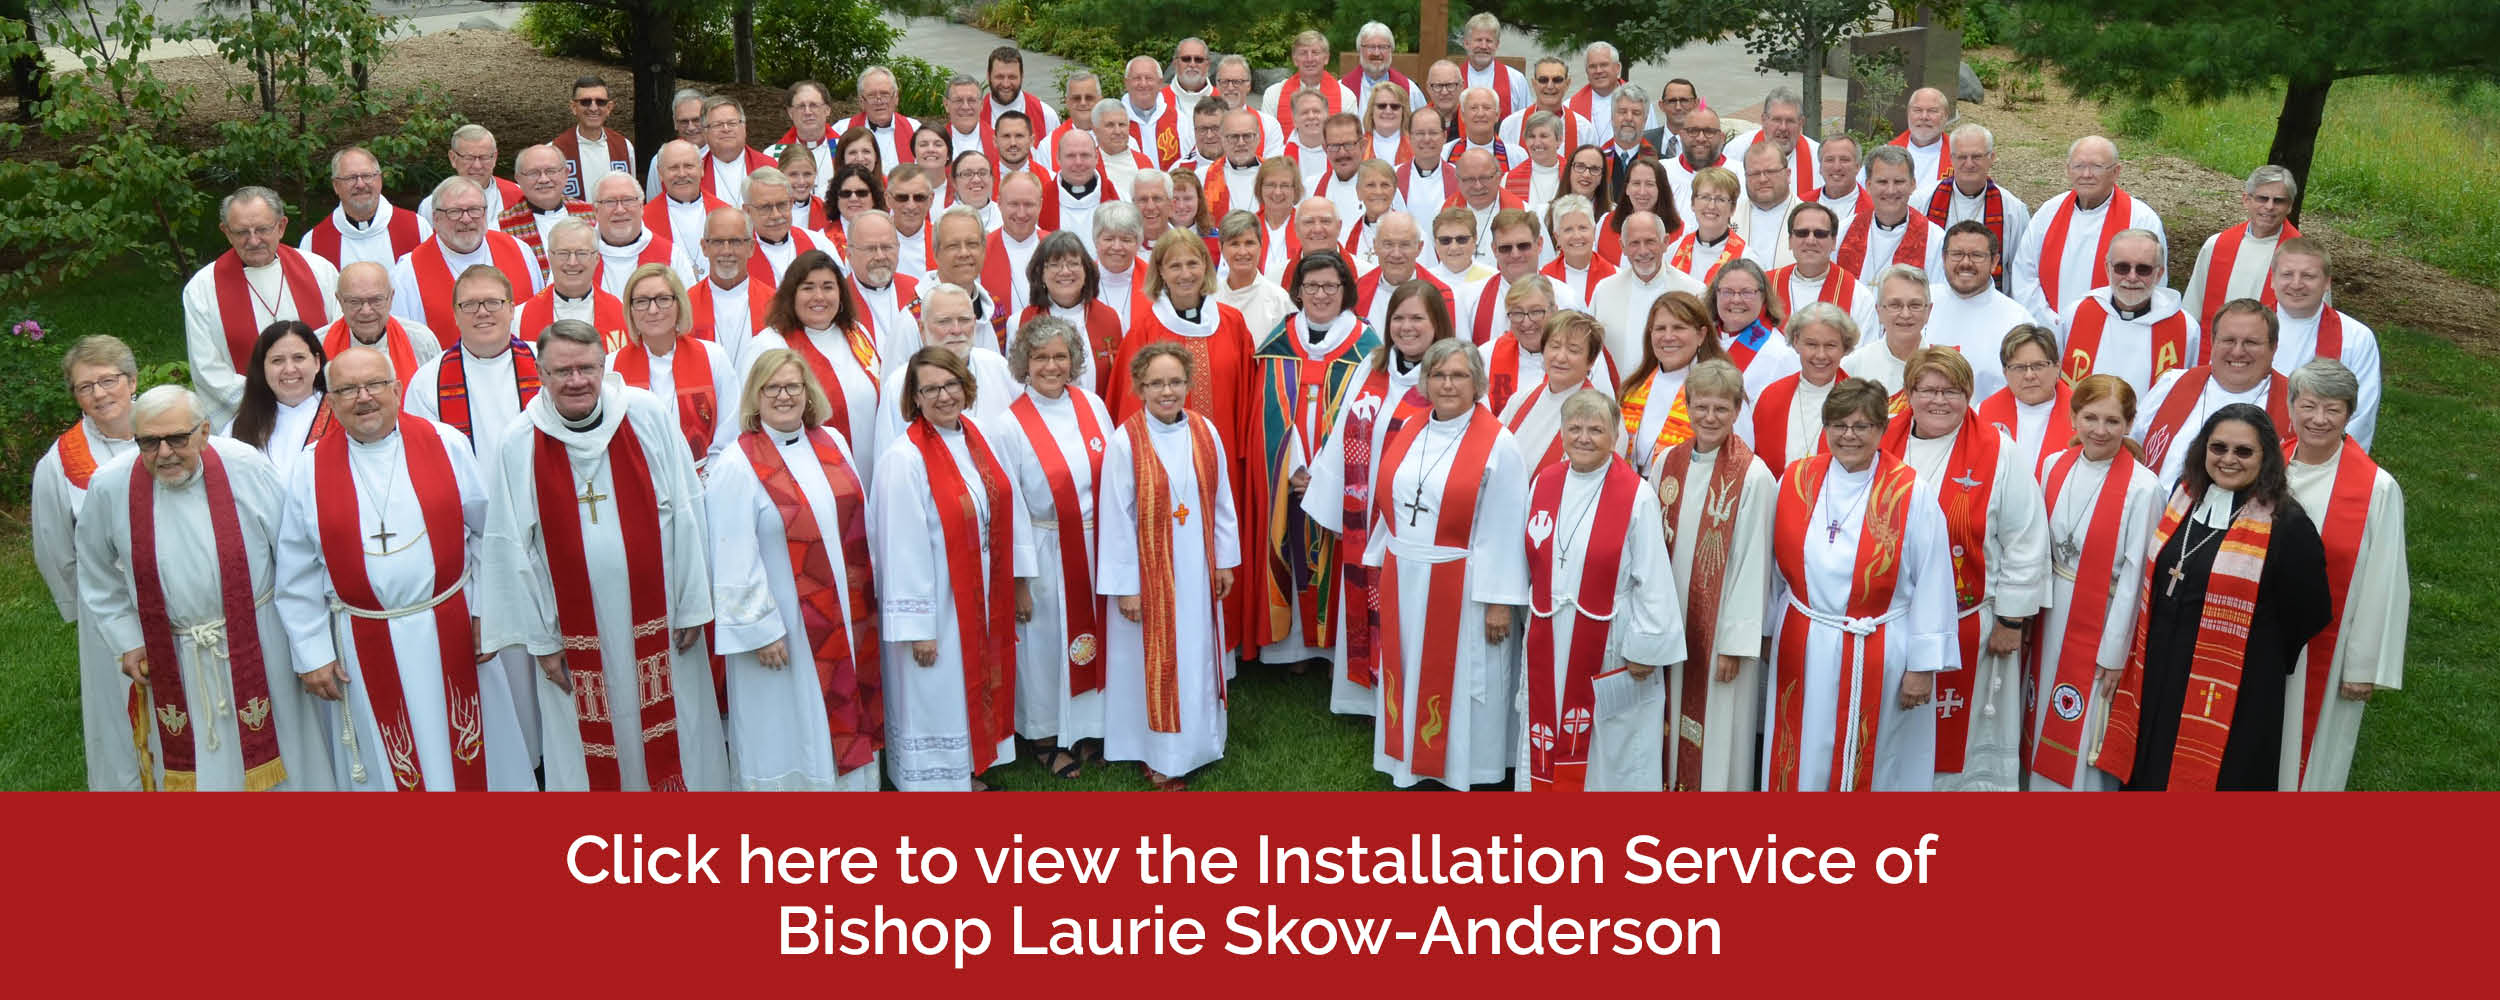 The Installation of Bishop Laurie Skow-Anderson